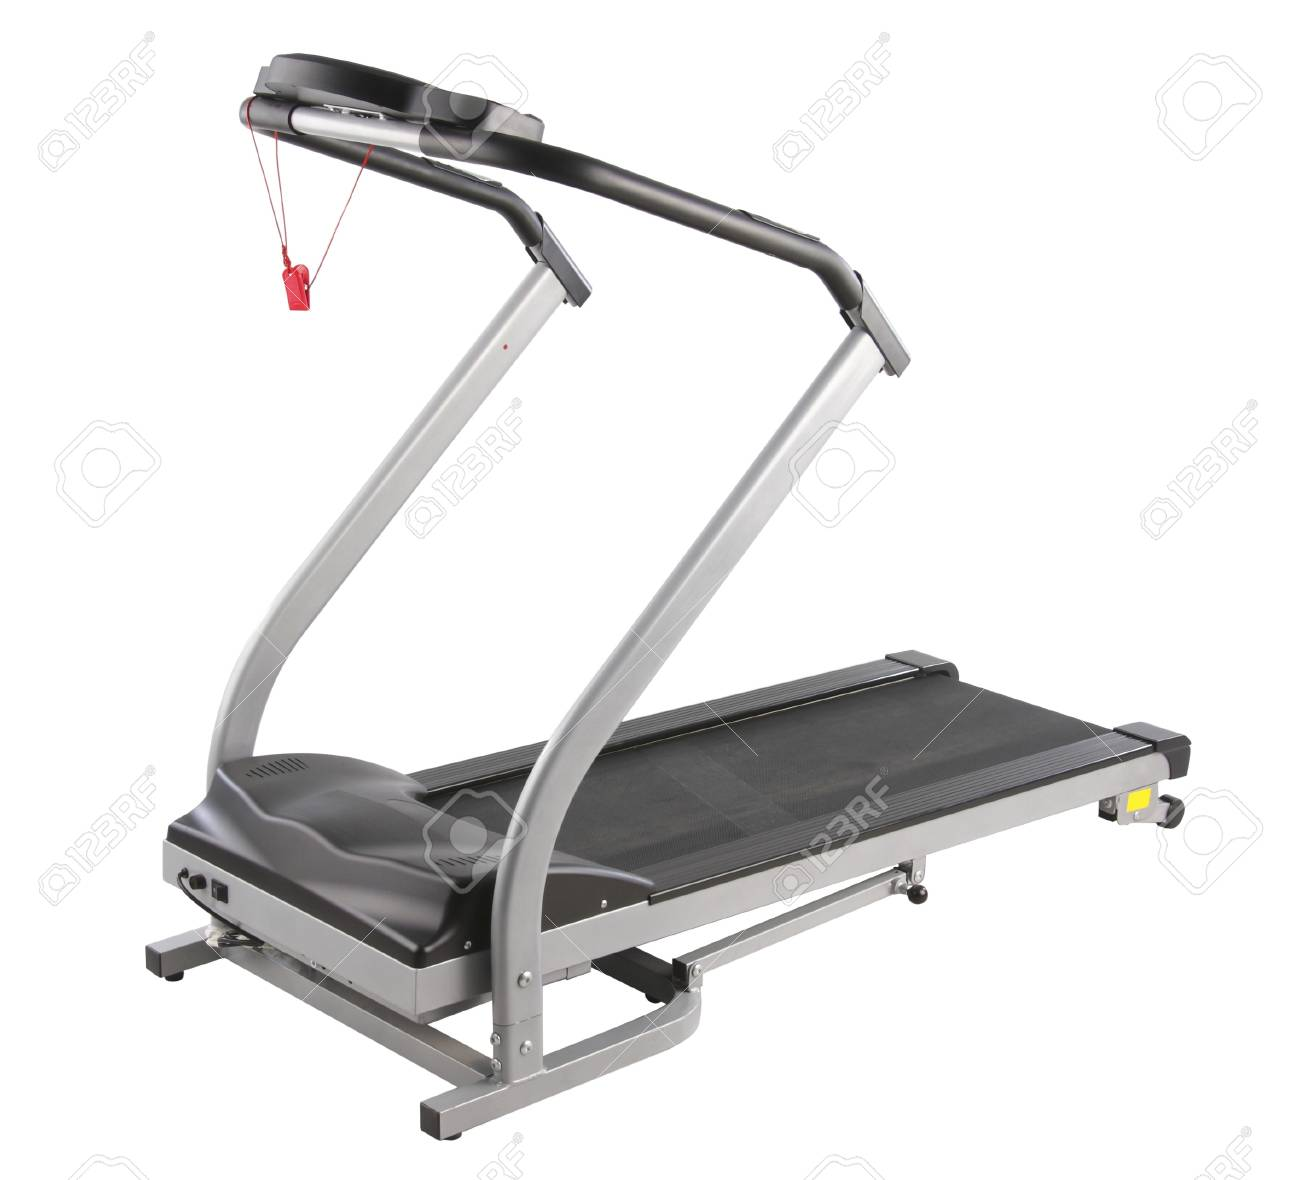 Let's exercise at home by the treadmill machine Stock Photo - 16918969